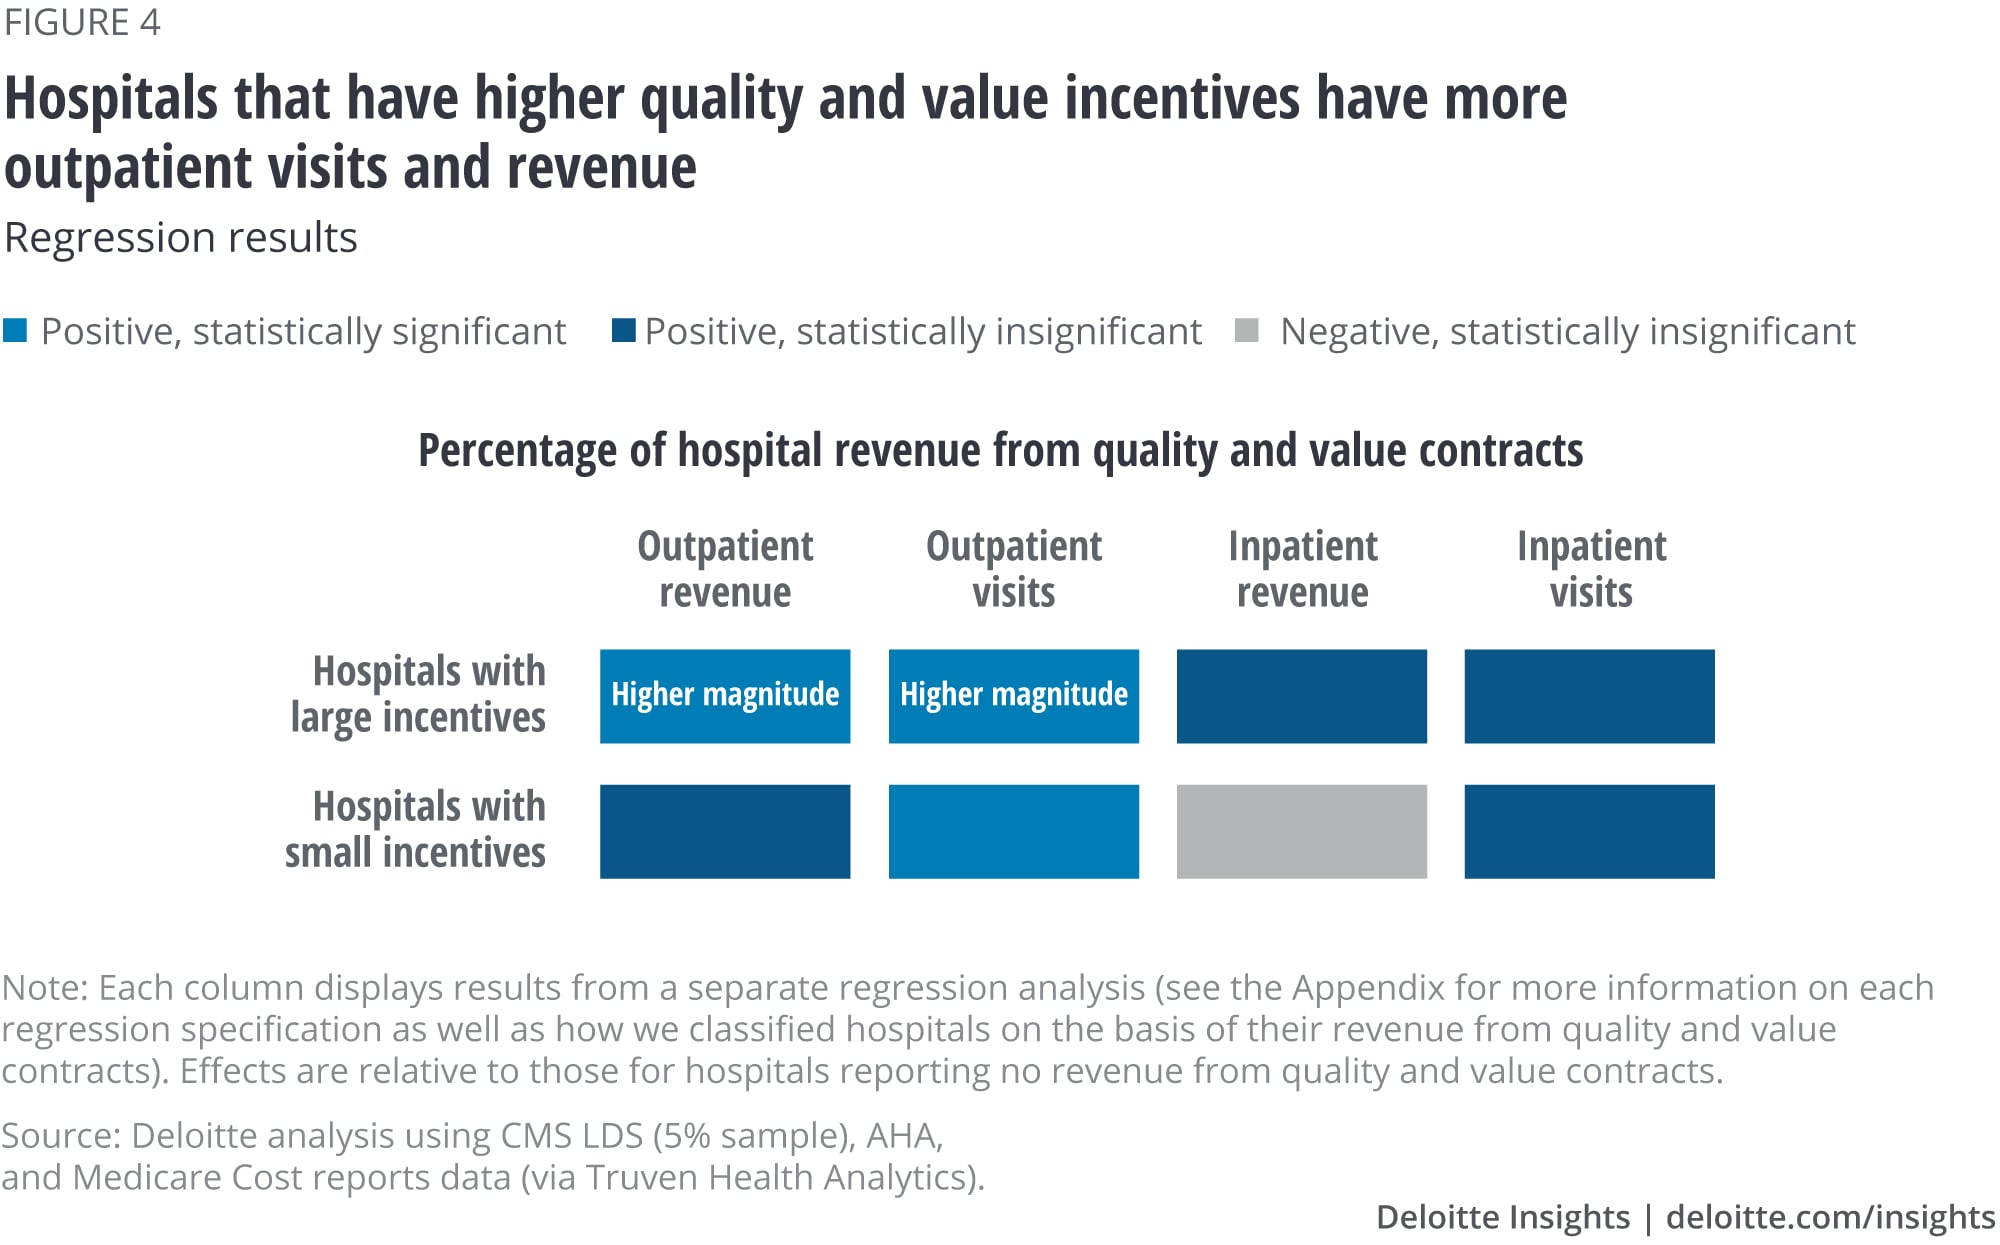 Hospitals that have higher quality and value incentives have more outpatient visits and revenue